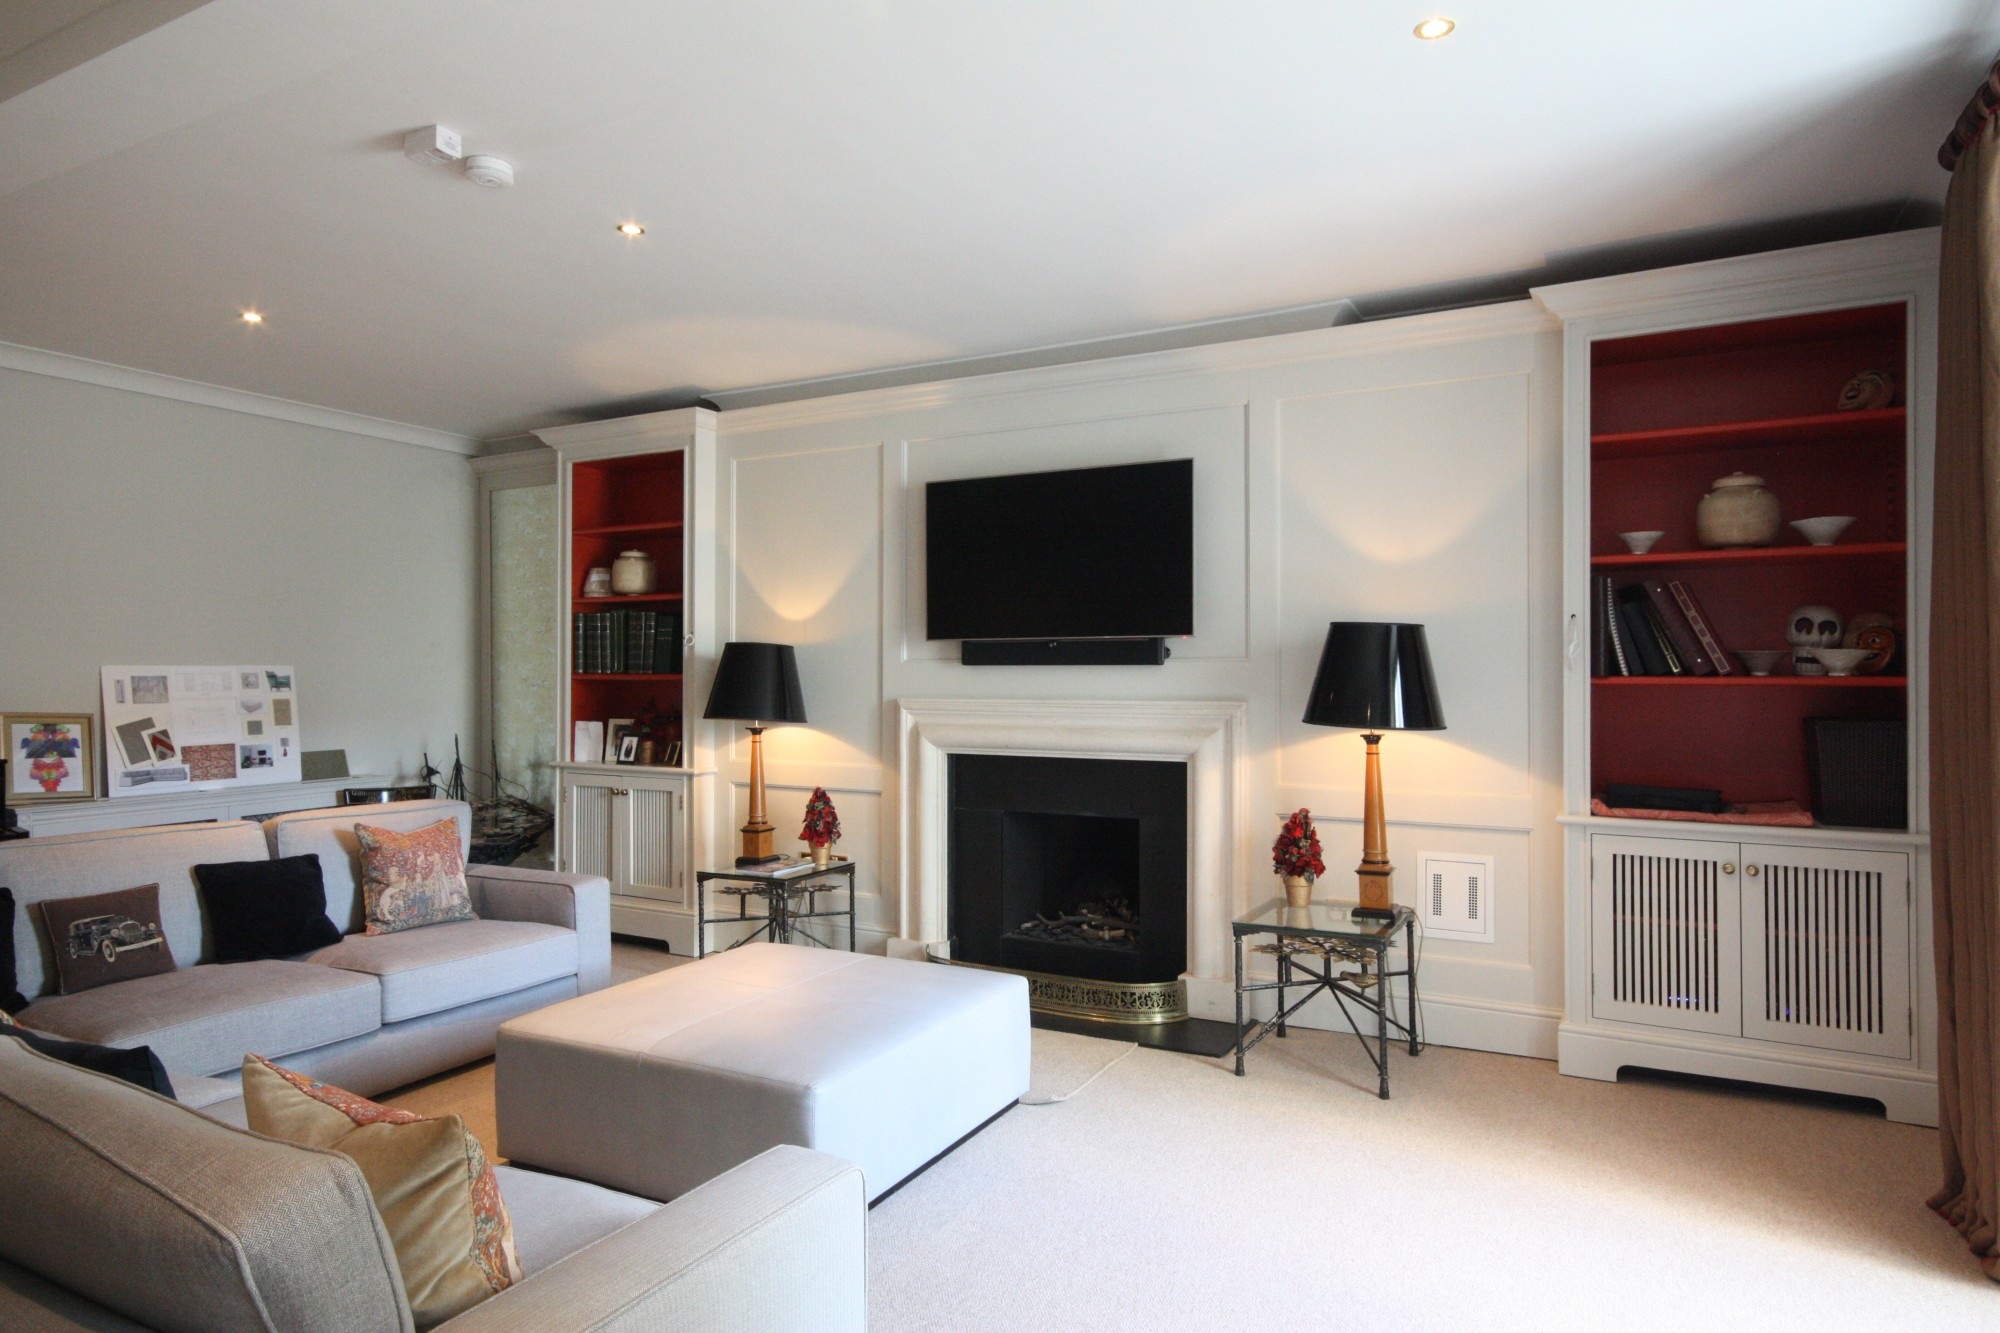 Bespoke wall panelling bookcases mirror TV unit enigma design